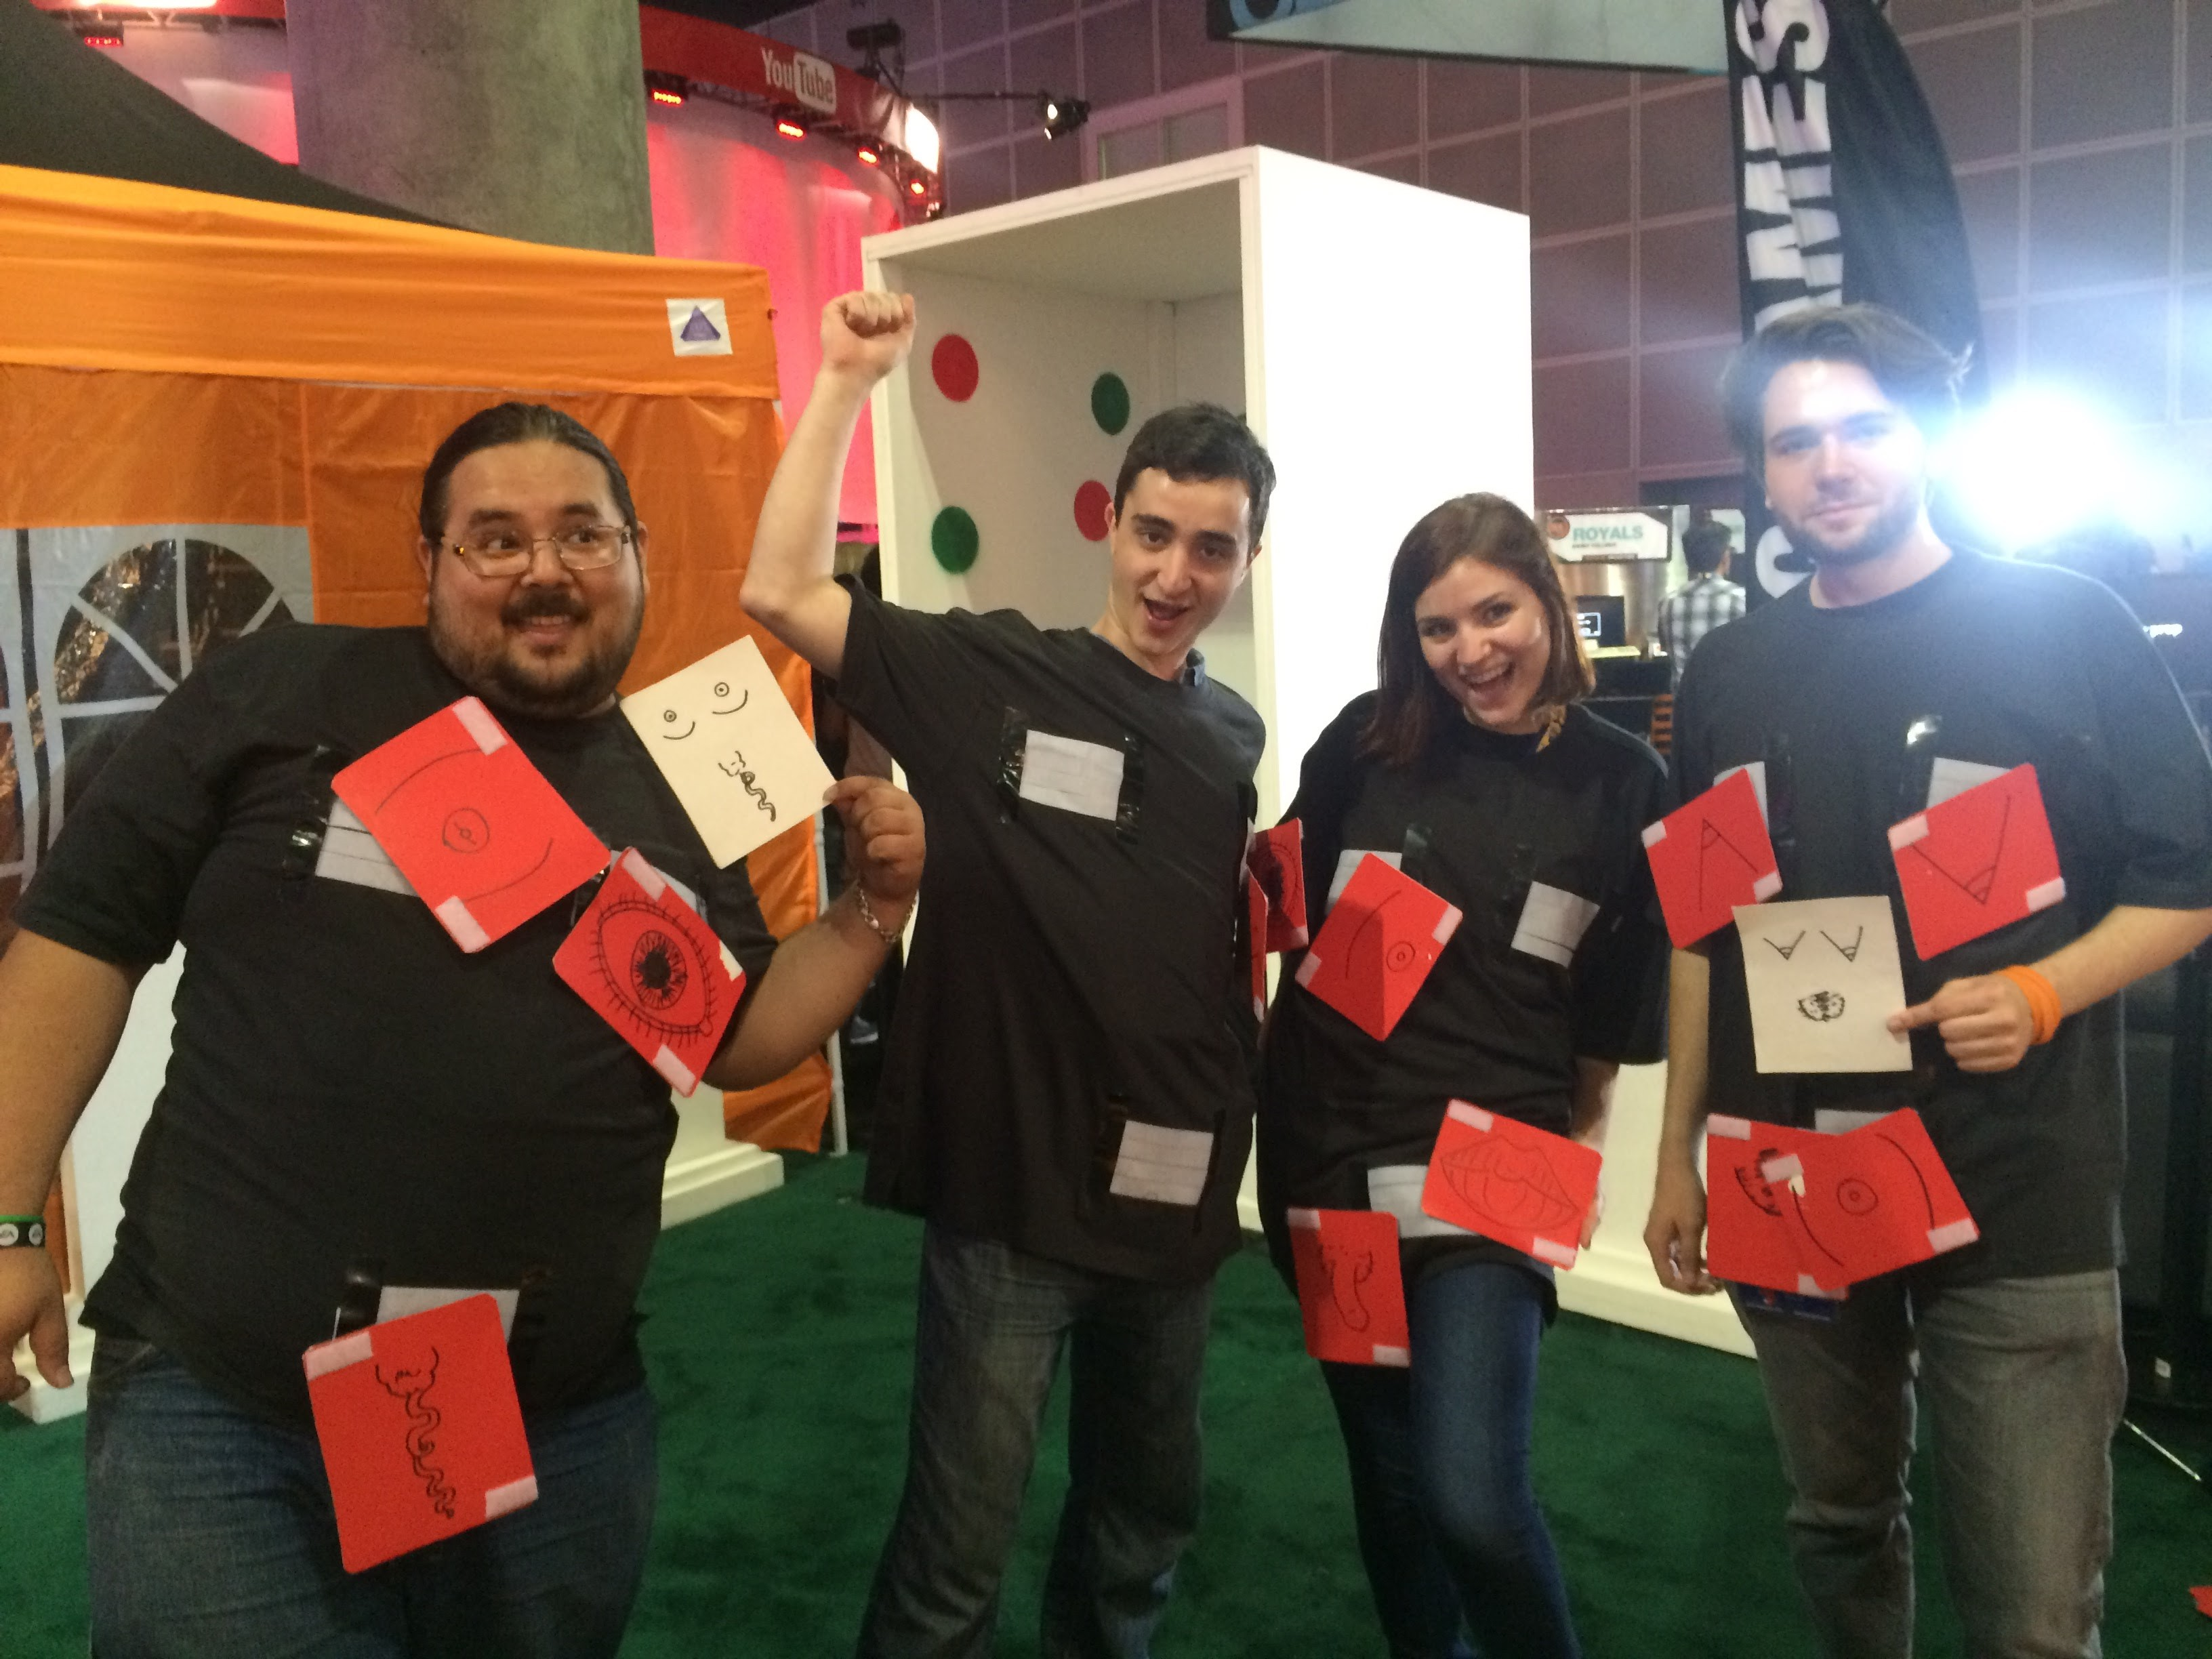 Four people stand together looking happy and triumphant. They are wearing black tee shirts with red cards attached with Velcro.